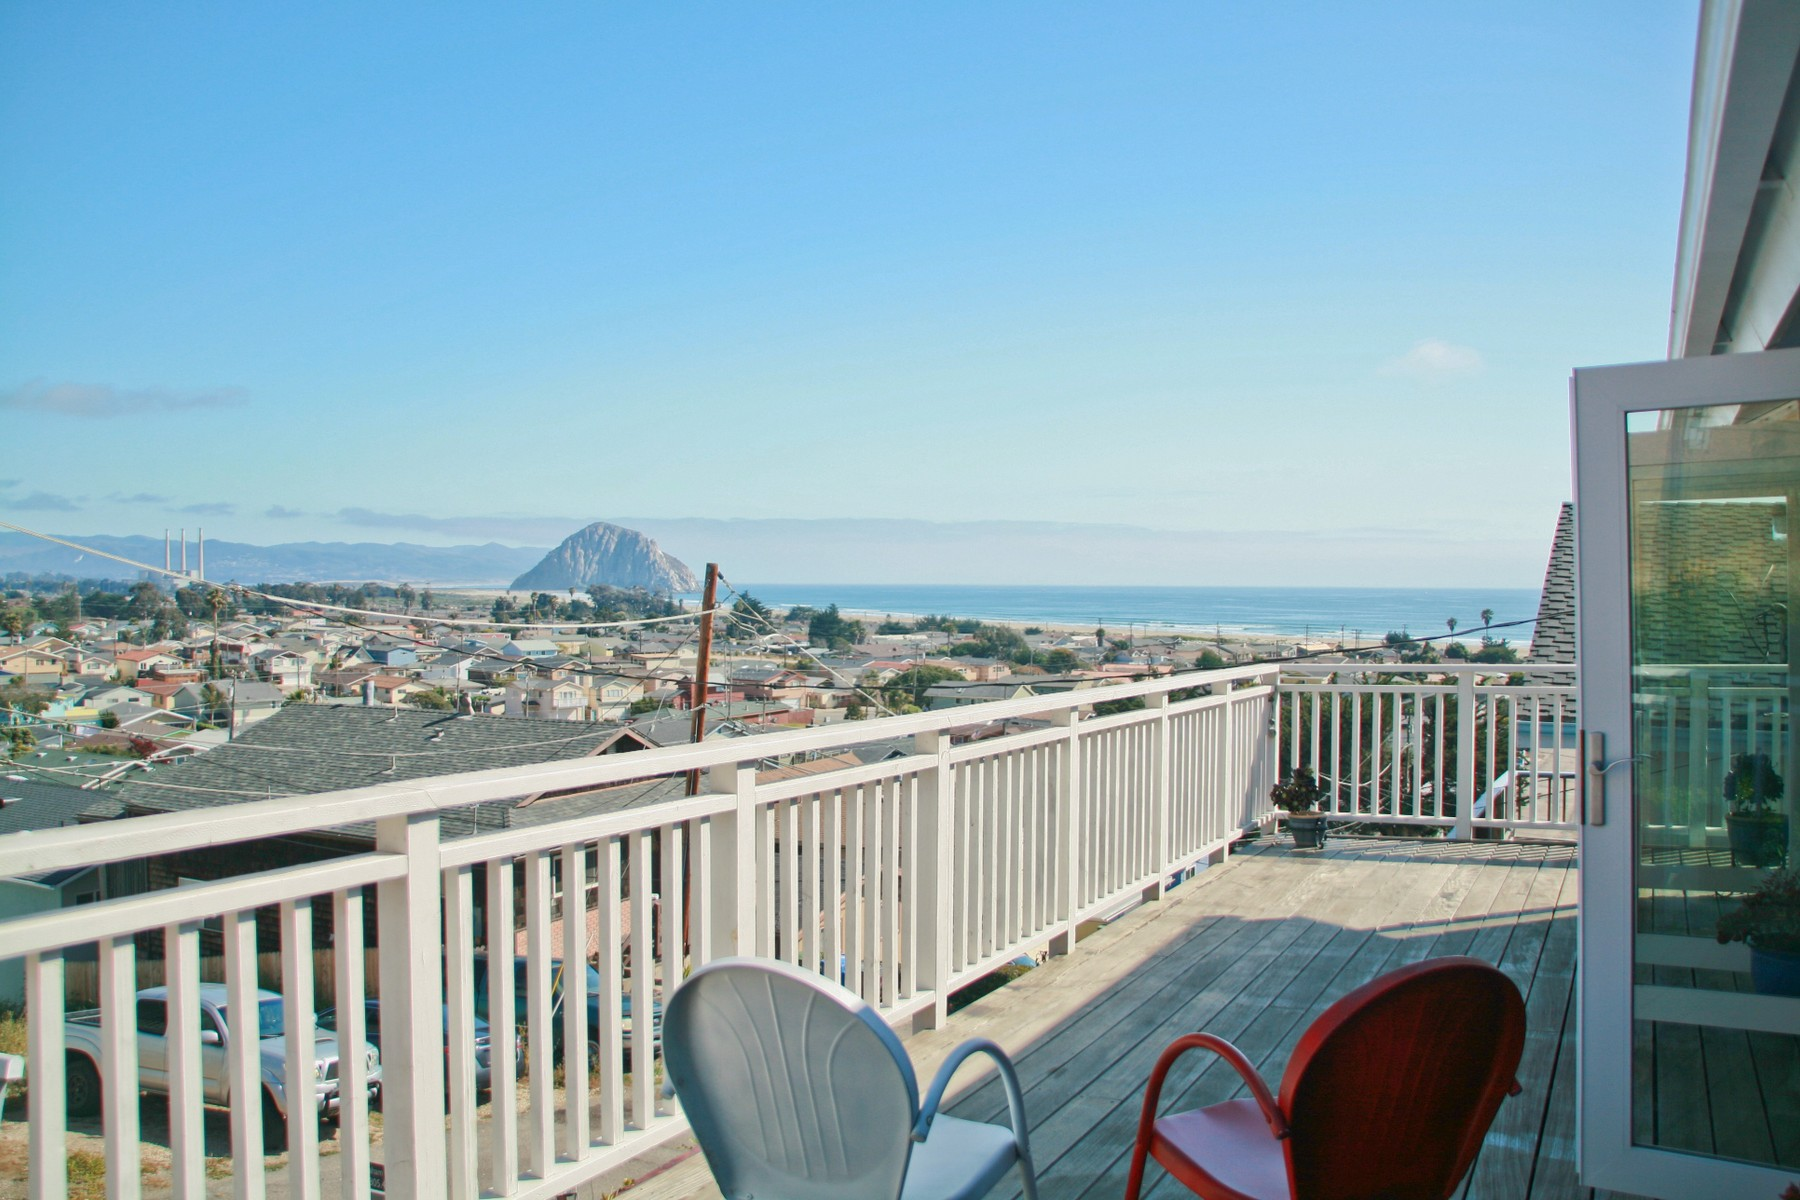 Single Family Home for Sale at Ocean and Morro Rock Views 491 Orcas Street Morro Bay, California 93442 United States